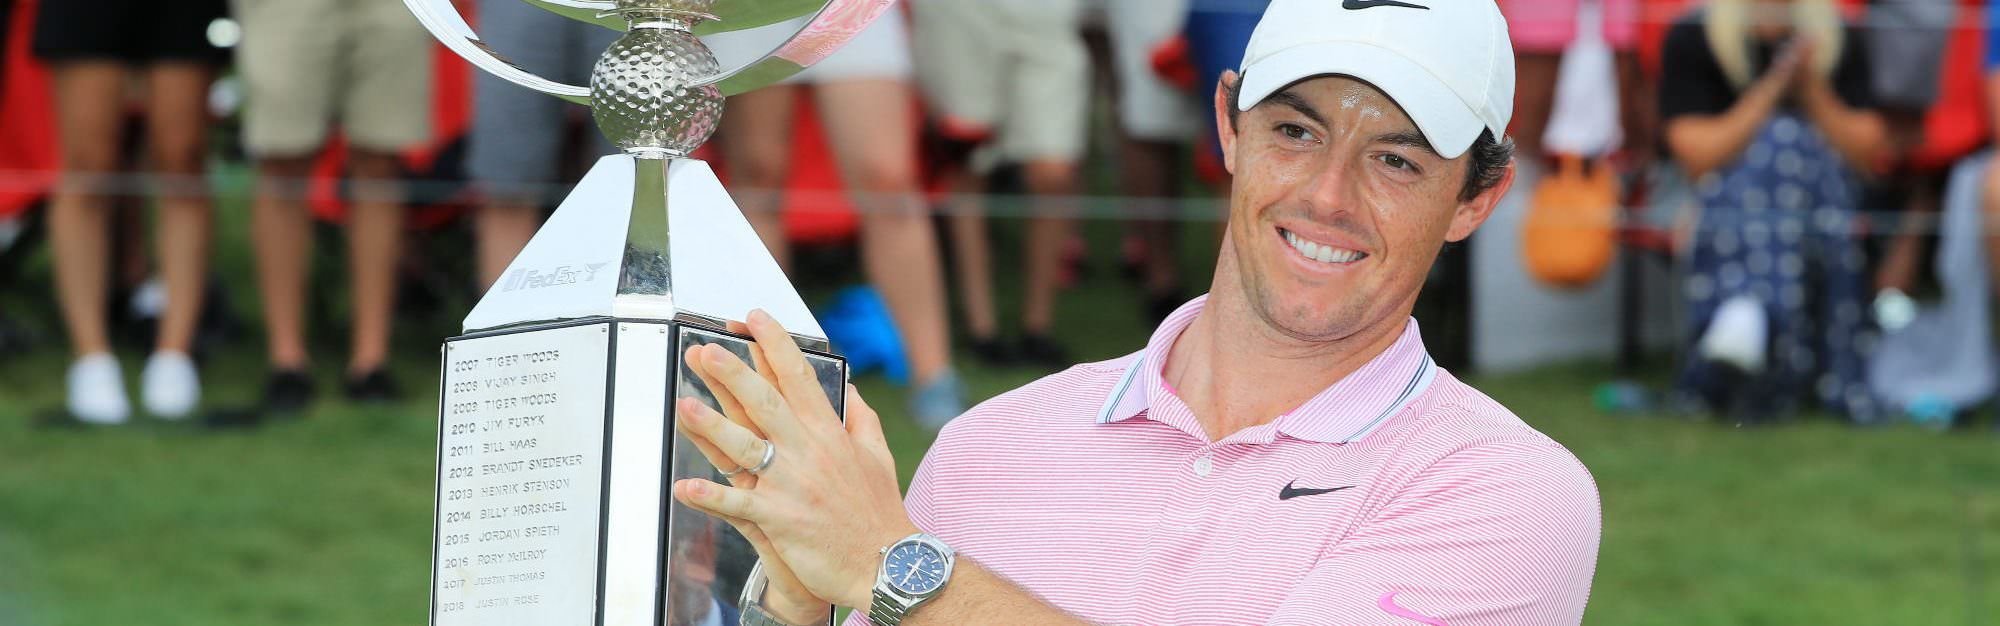 15 million reasons to smile: Rory makes FedEx Cup history